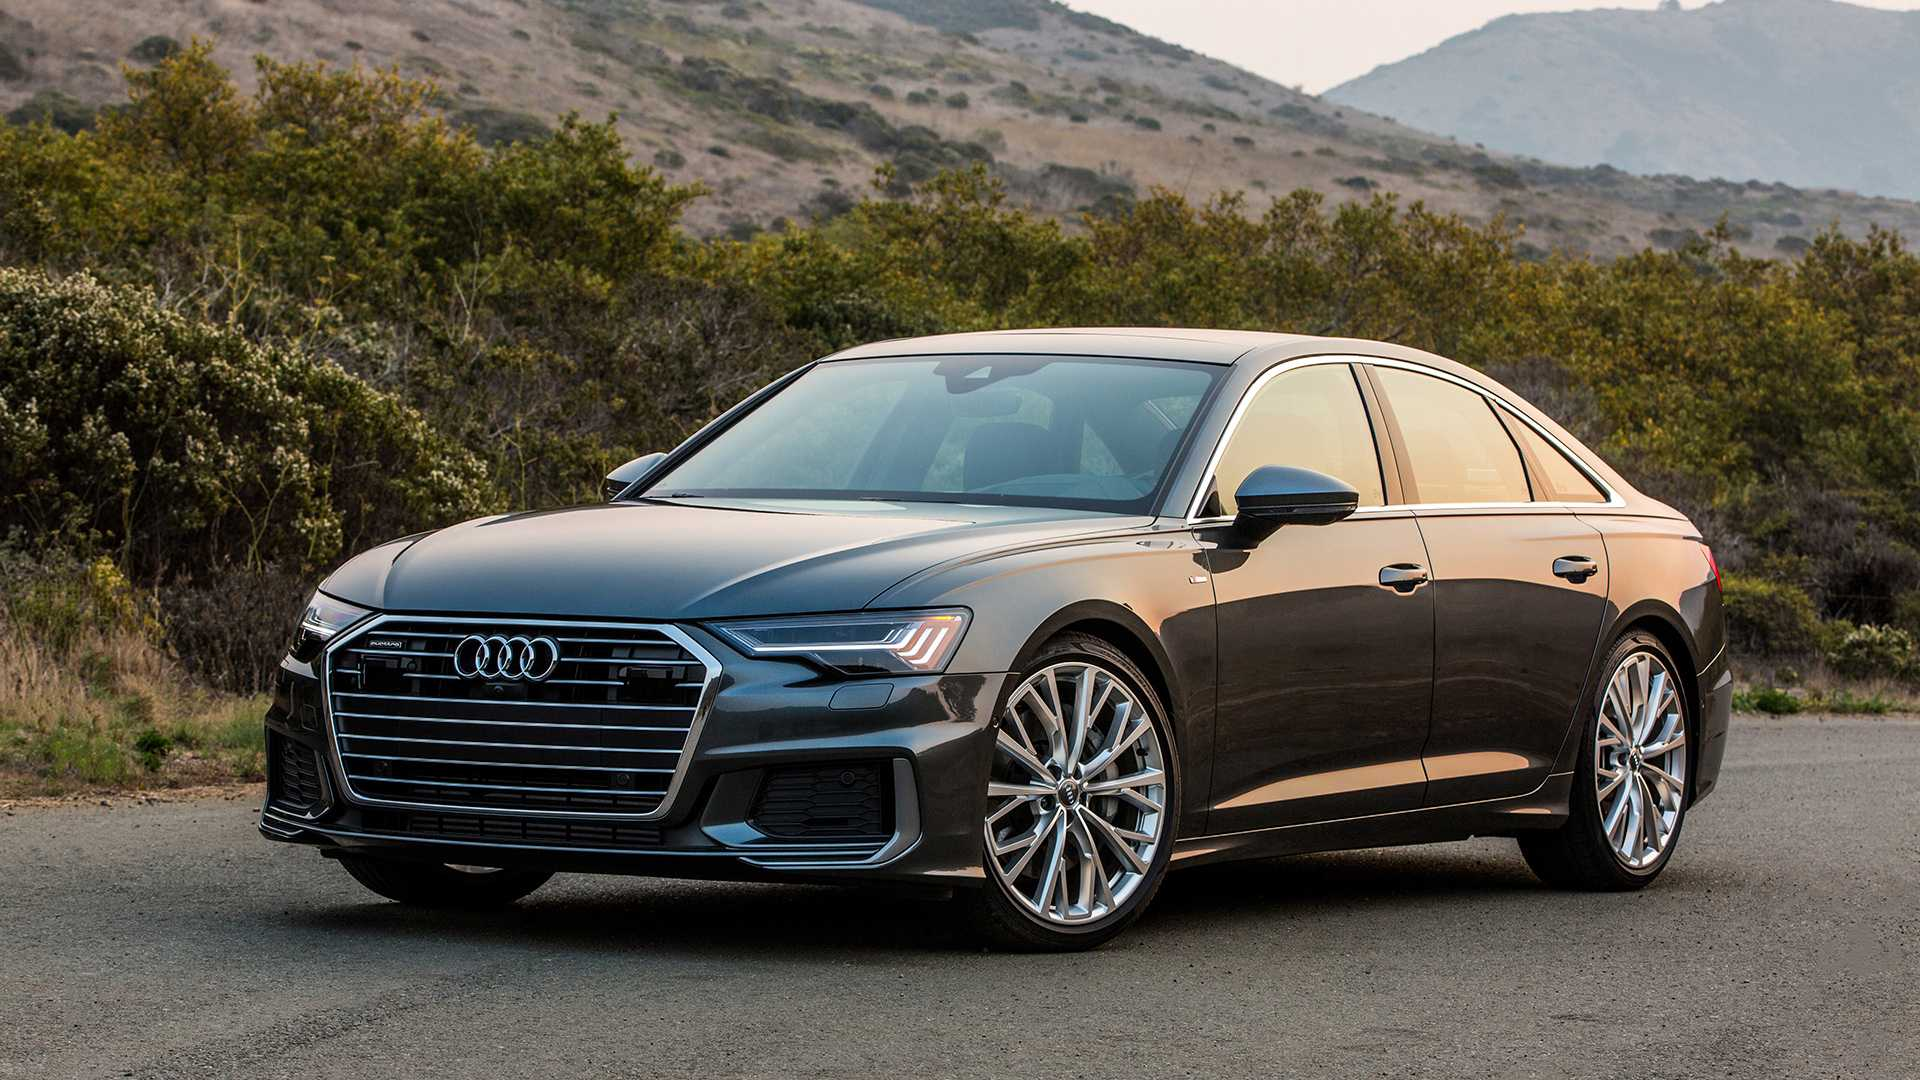 53 Concept of The Modelli Audi 2019 New Review Speed Test by The Modelli Audi 2019 New Review